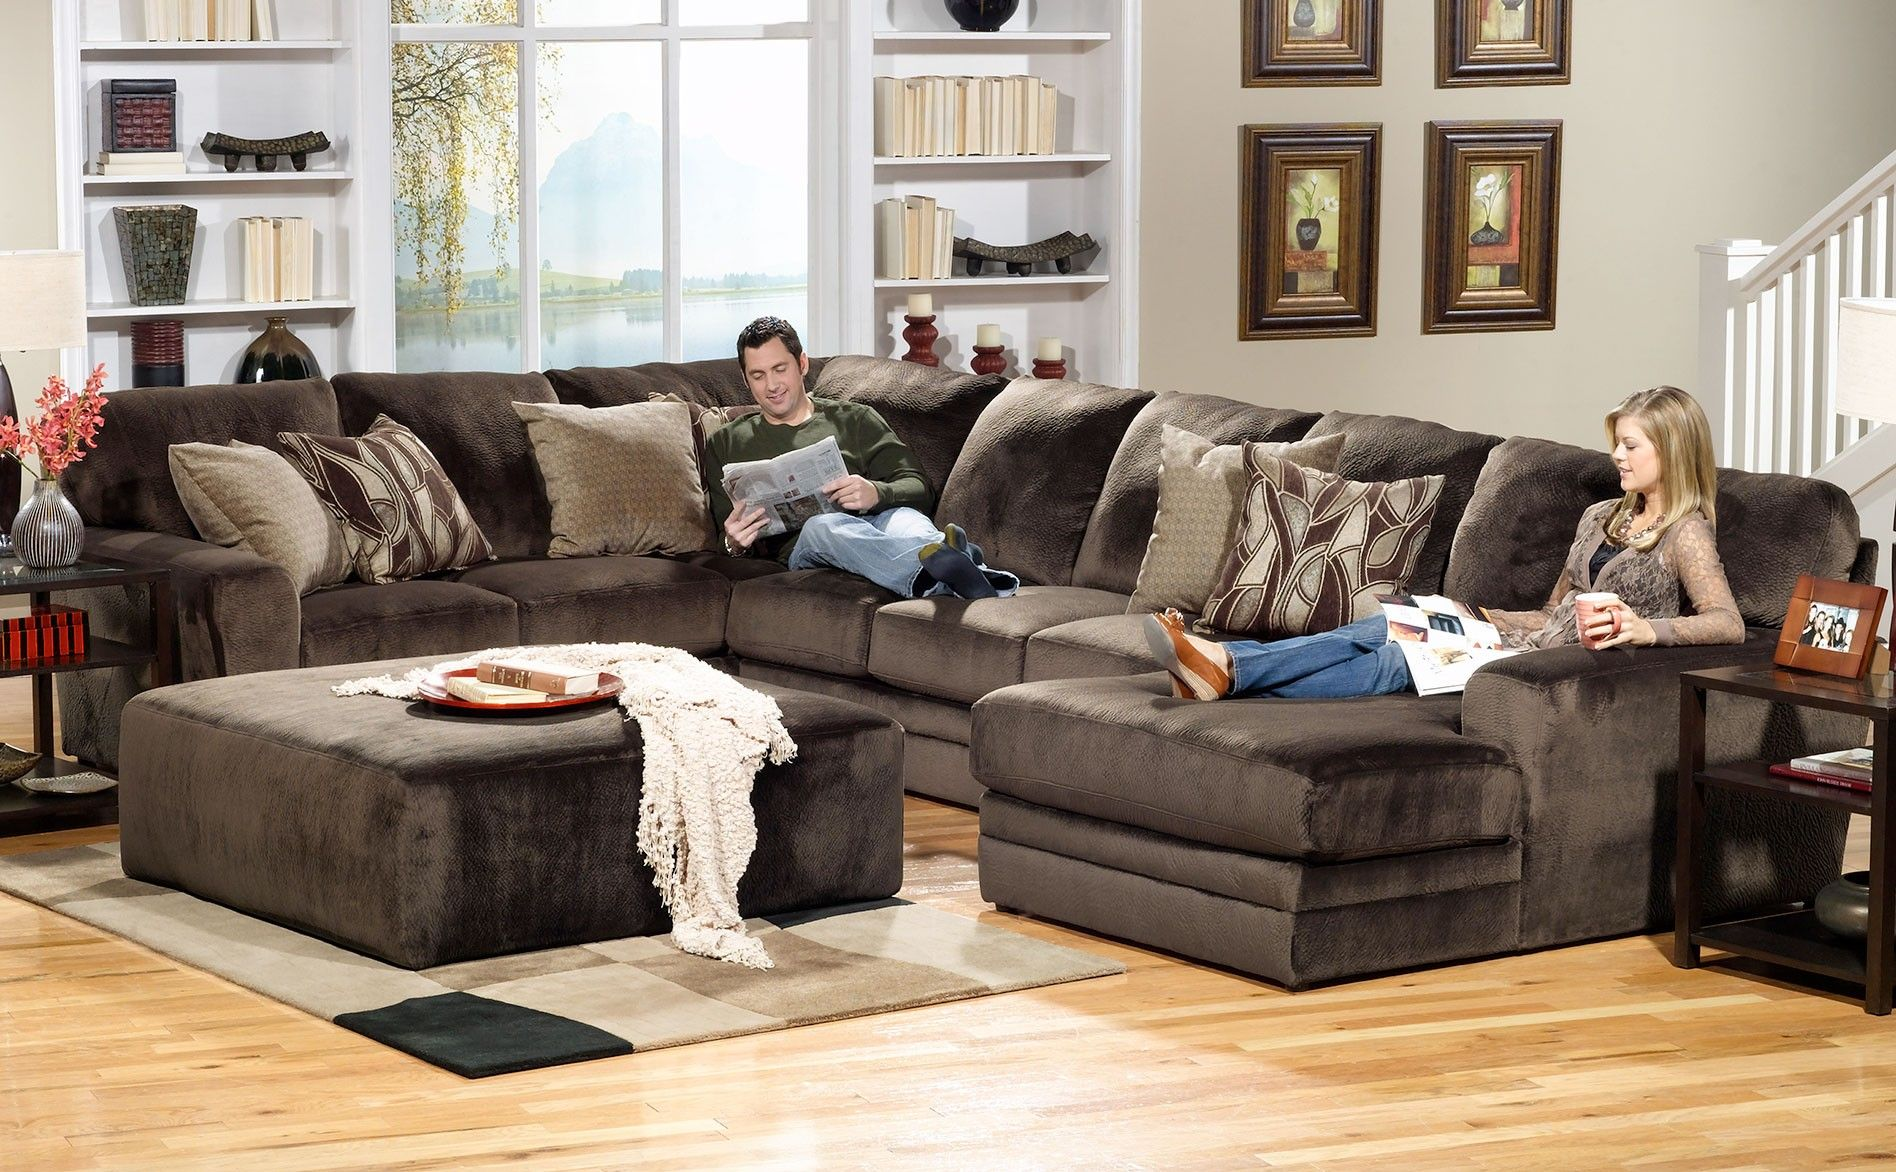 Awesome Wakefield 3 Piece Sectional Sectionals Raleigh Furniture Download Free Architecture Designs Rallybritishbridgeorg